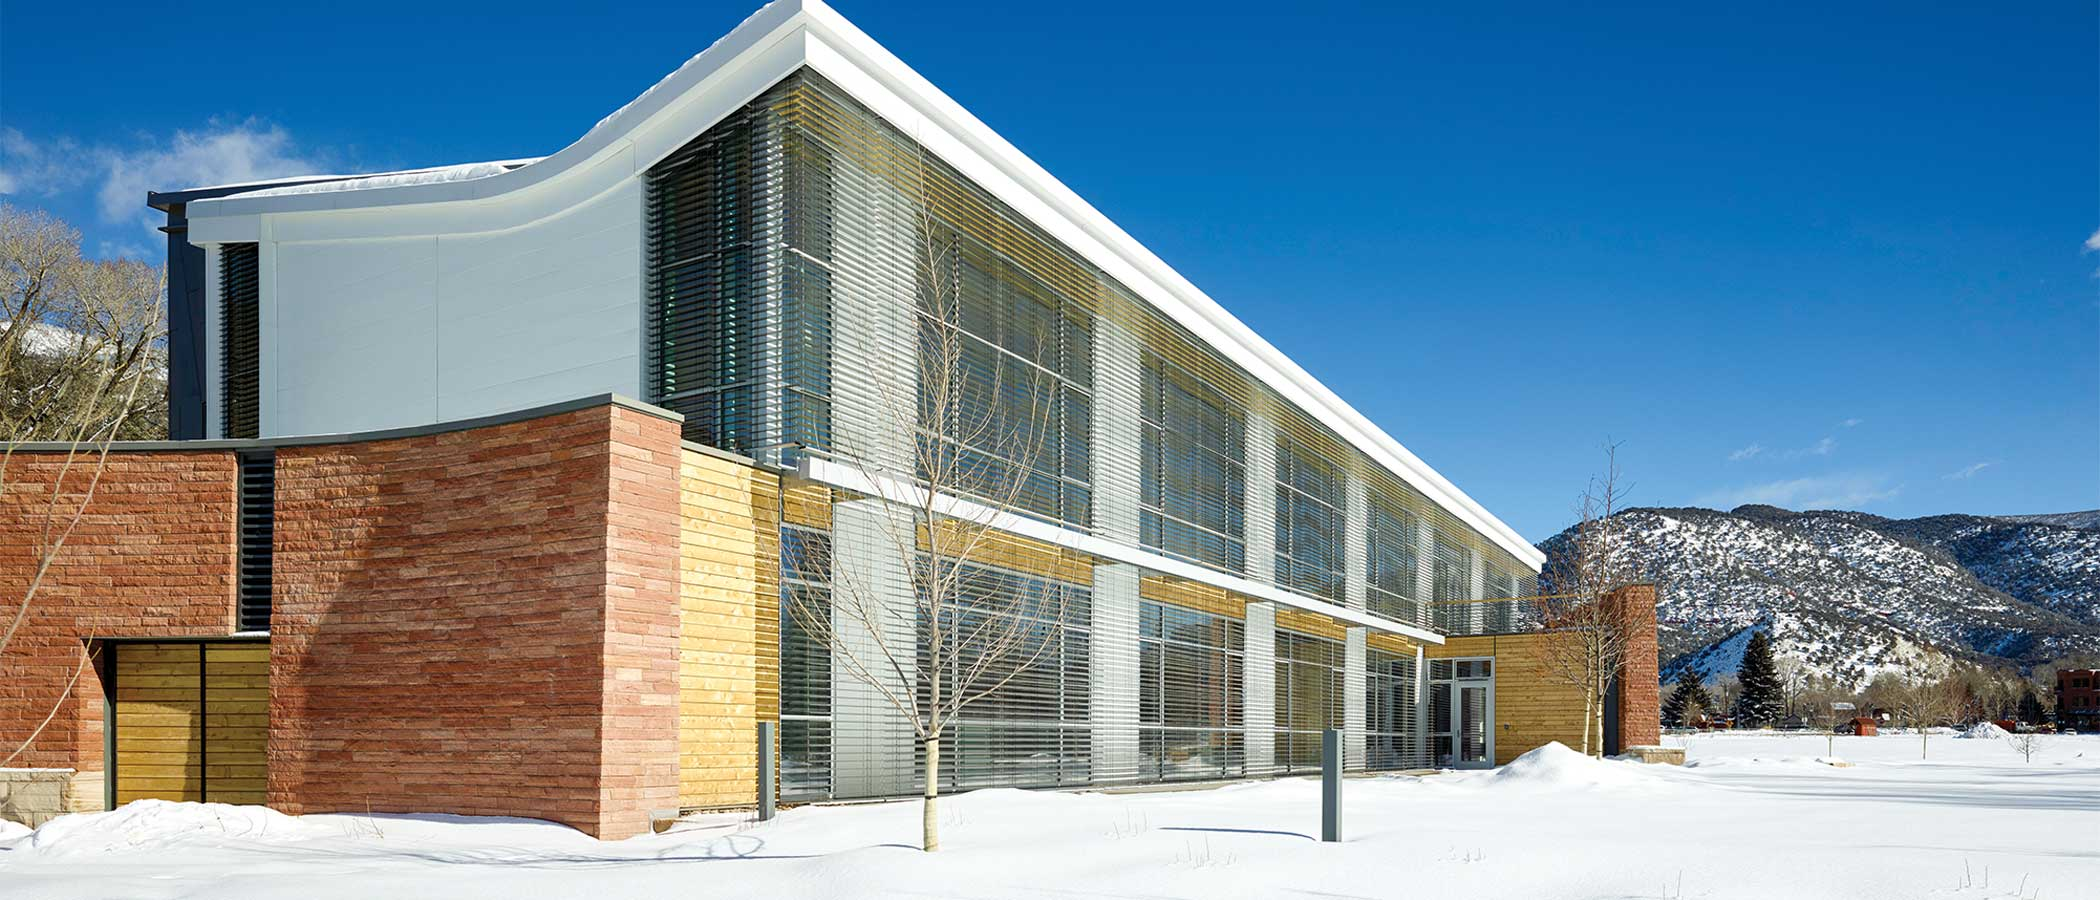 Exterior of Rocky mountain Institute building during winter.